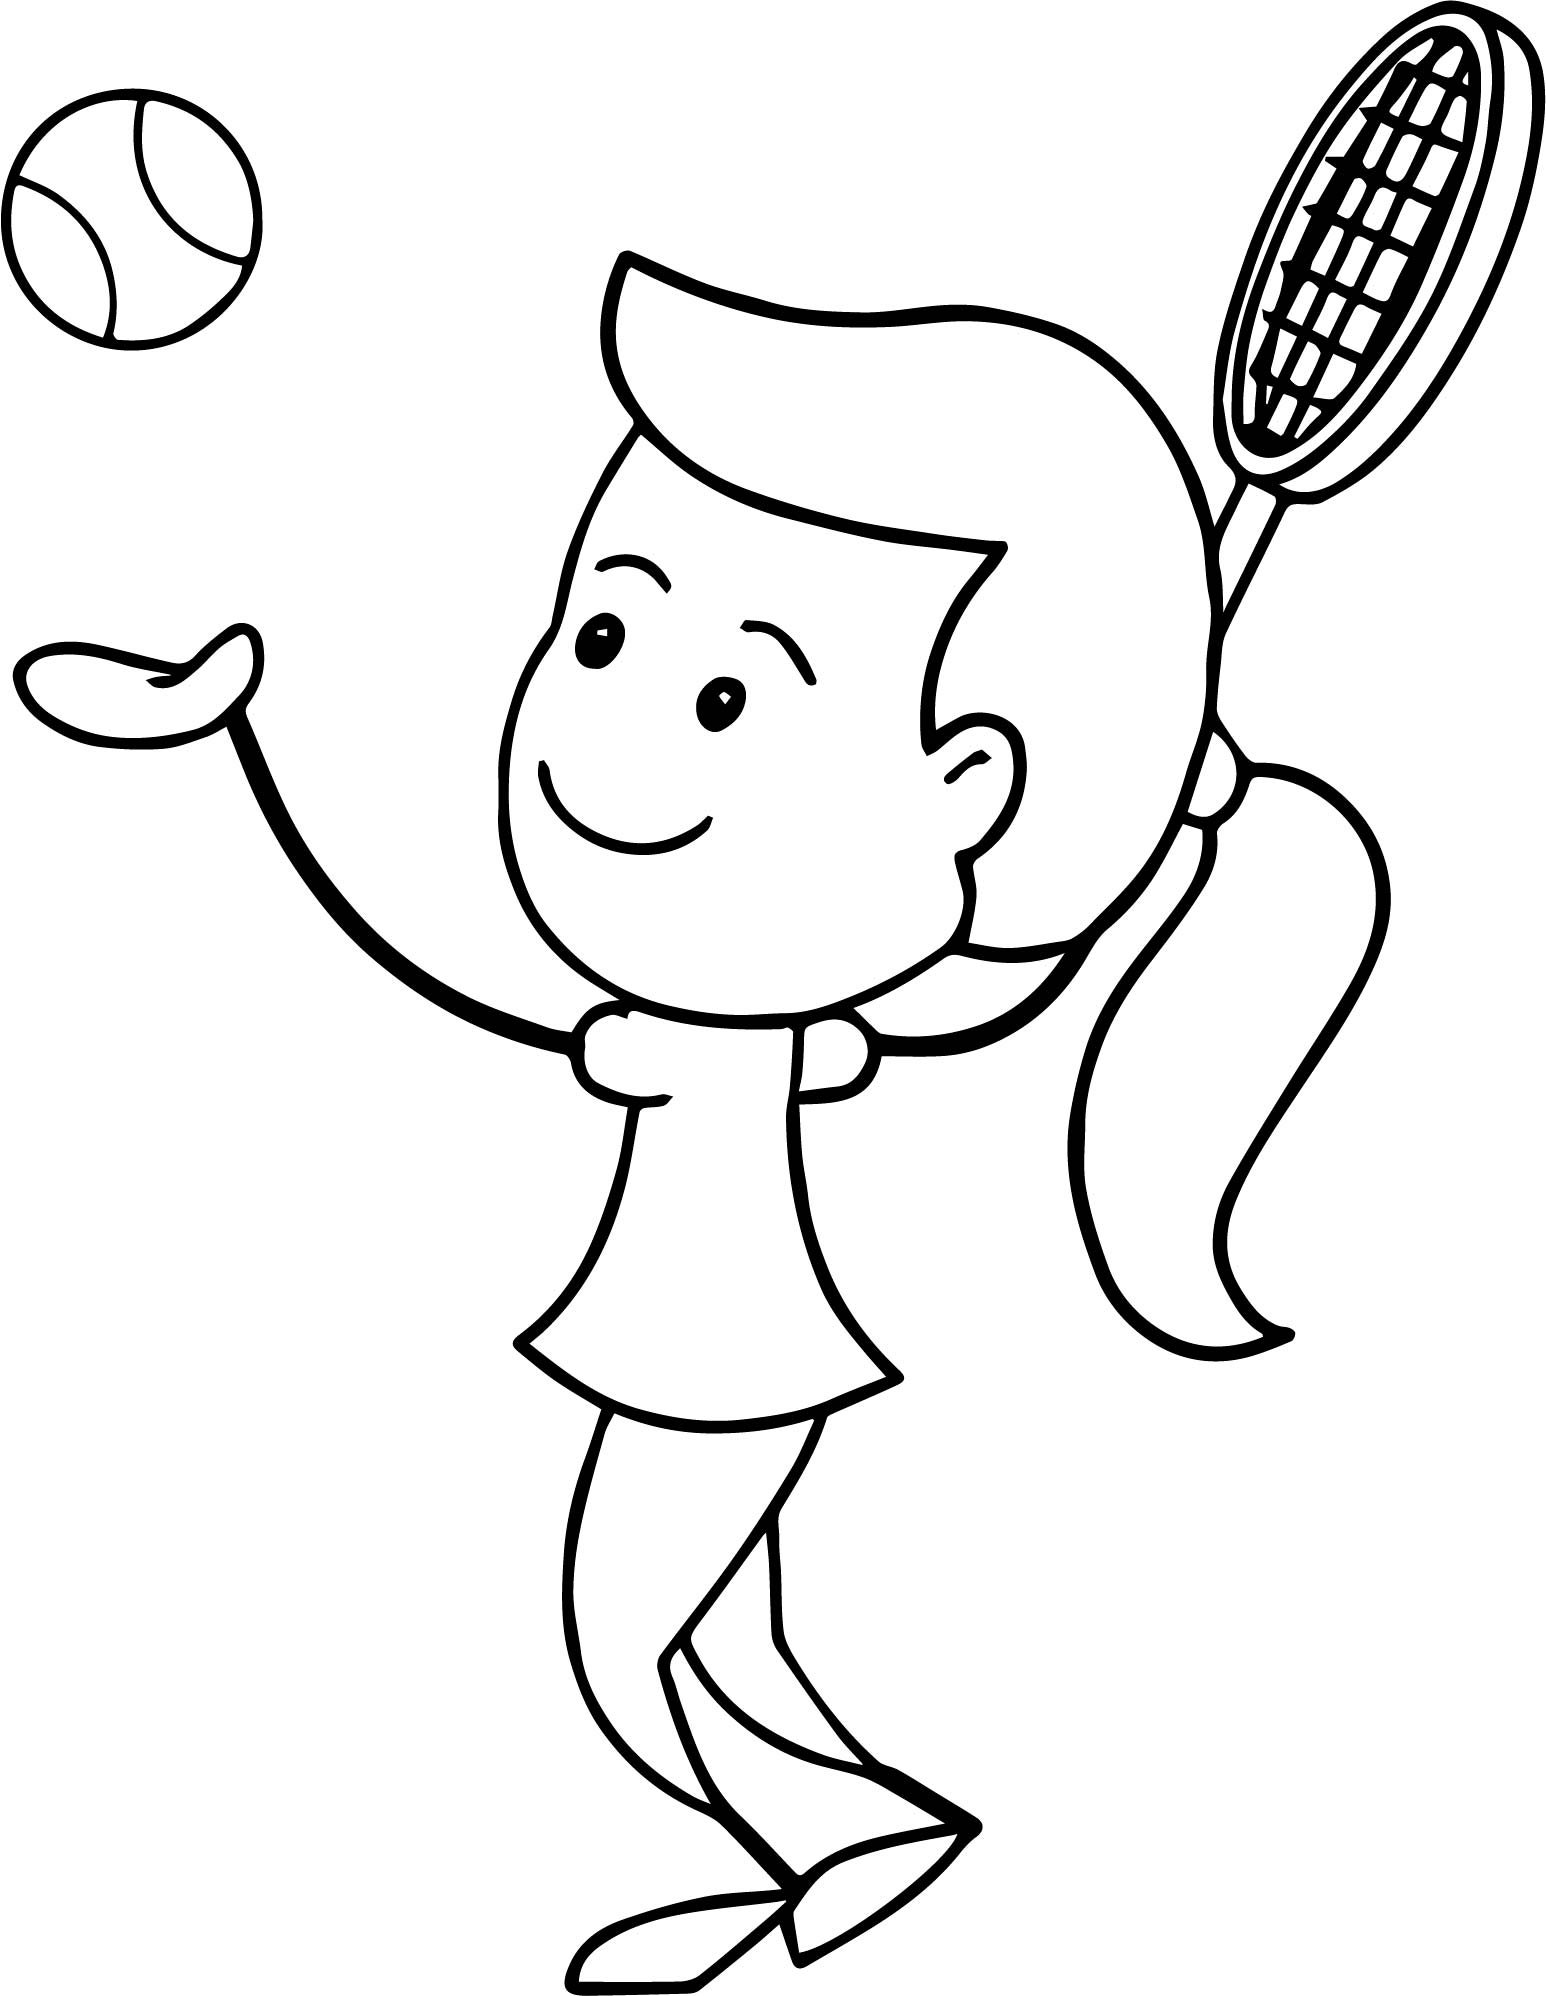 girl serving tennis ball coloring page